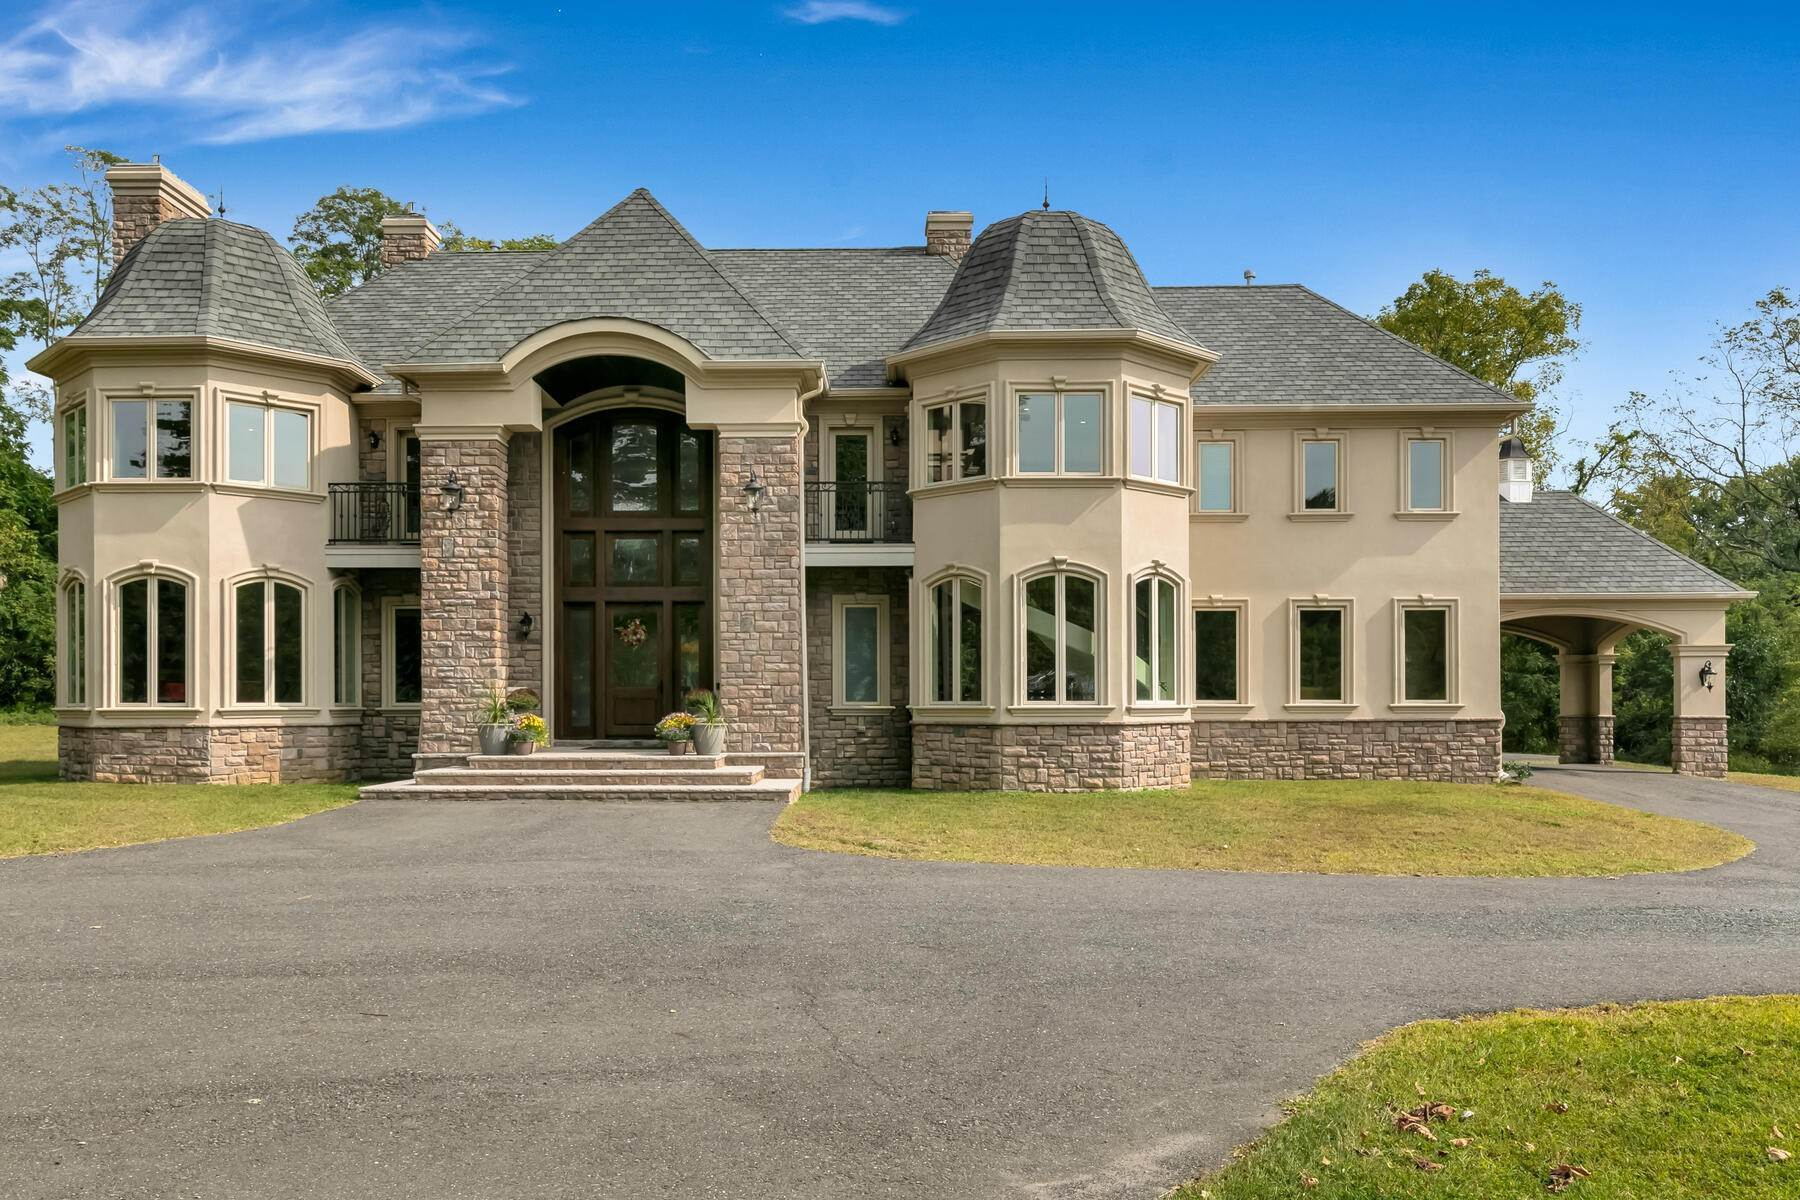 Single Family Homes for Sale at Custom Built to Perfection! 64 Crine Road Colts Neck, New Jersey 07722 United States